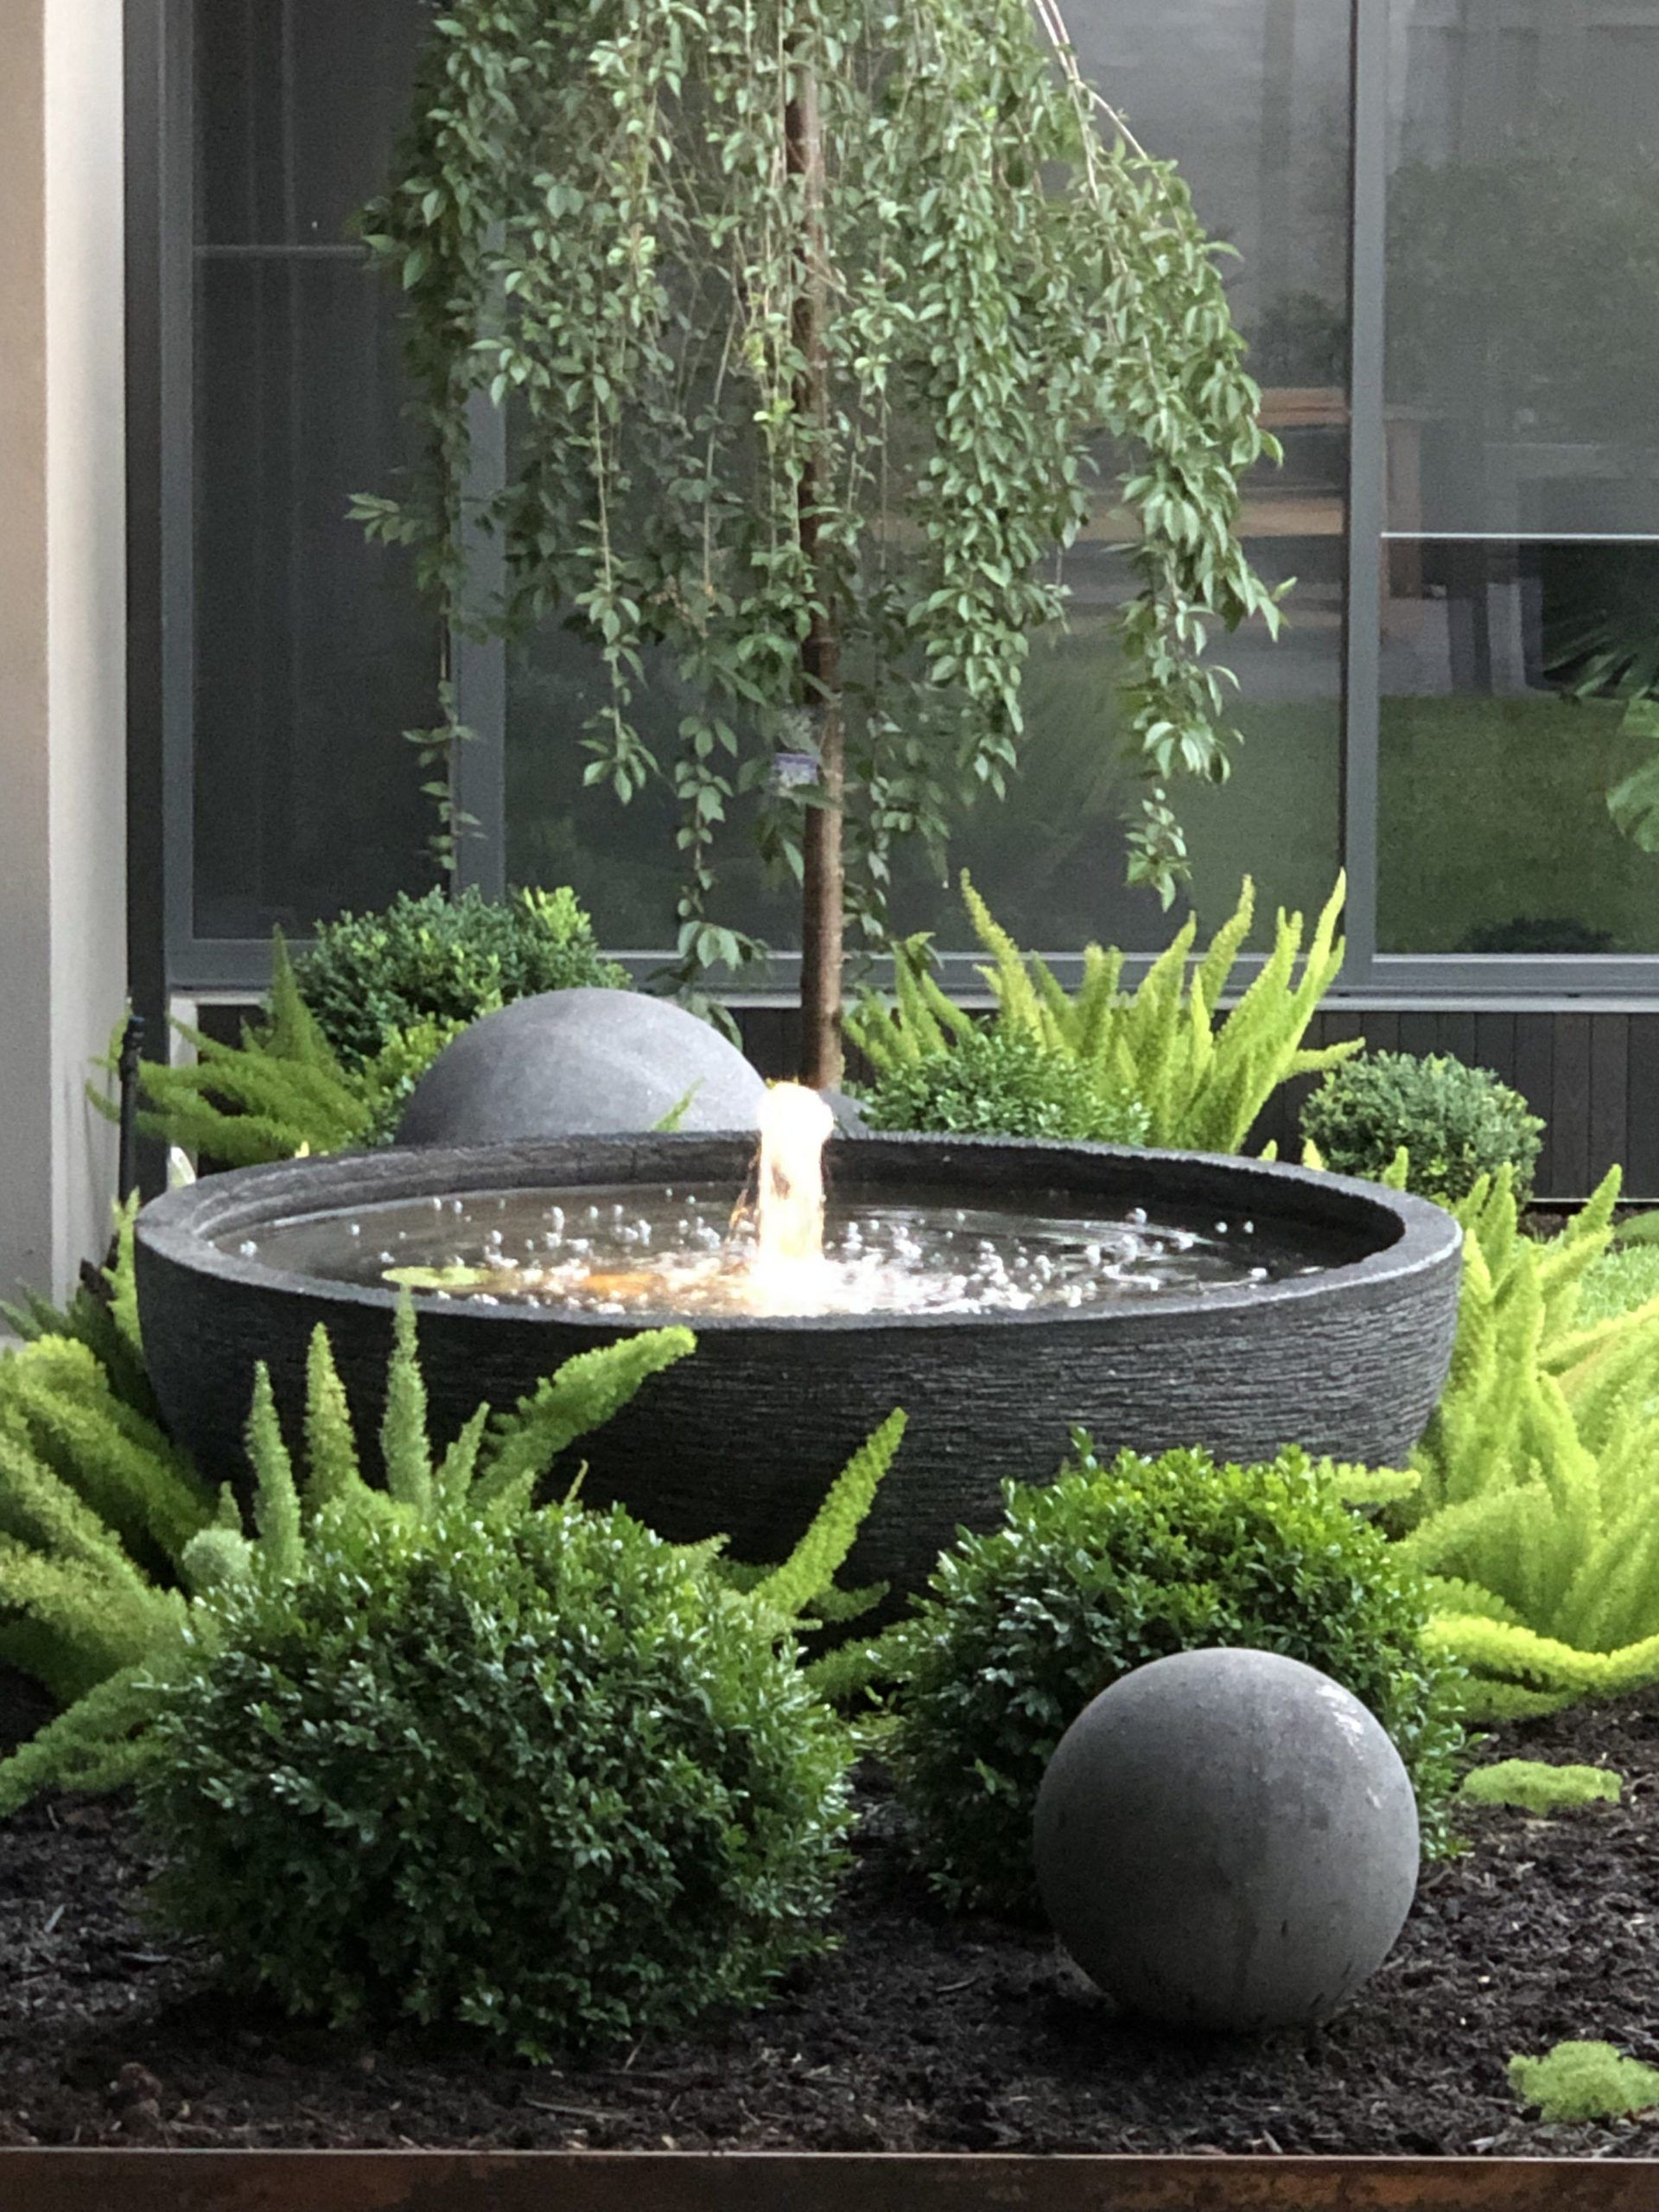 Looking for some inspiration for relaxing garden ideas, we've got 10 ideas for all outdoor living areas from decks, small spaces, side yards and back yards with seating areas to bring you peace. Get some DIY small patio ideas on a budget today! #DIYsmallpatioideas #relaxinggardenideas #DIYgardenideasbudget